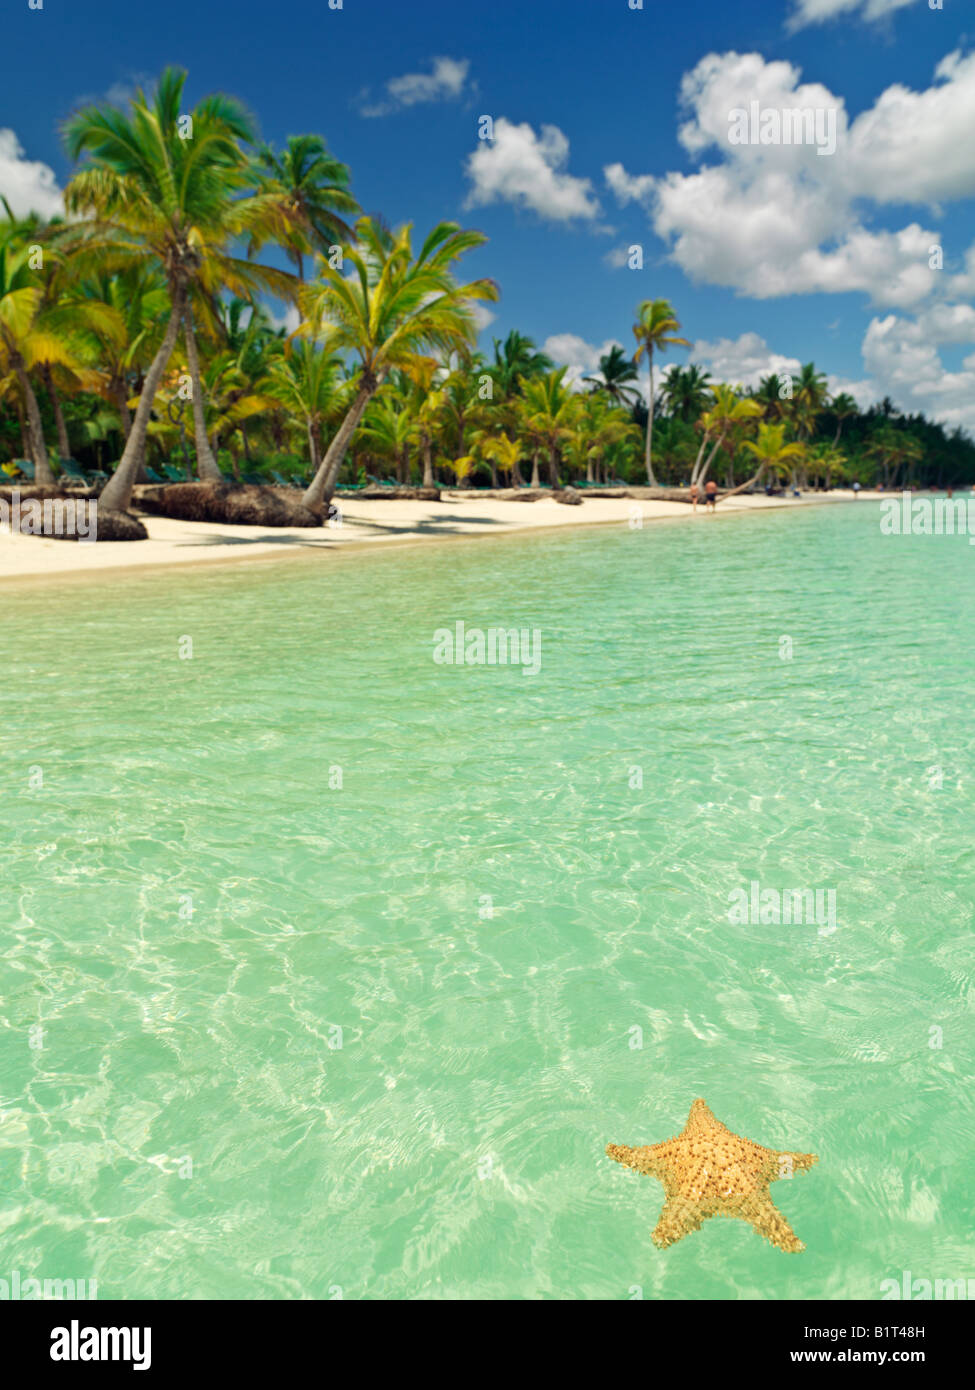 Dominican Republic Punta Cana Bavaro Beach,,starfish floating on placid water with blue sky and palm fringed beach - Stock Image